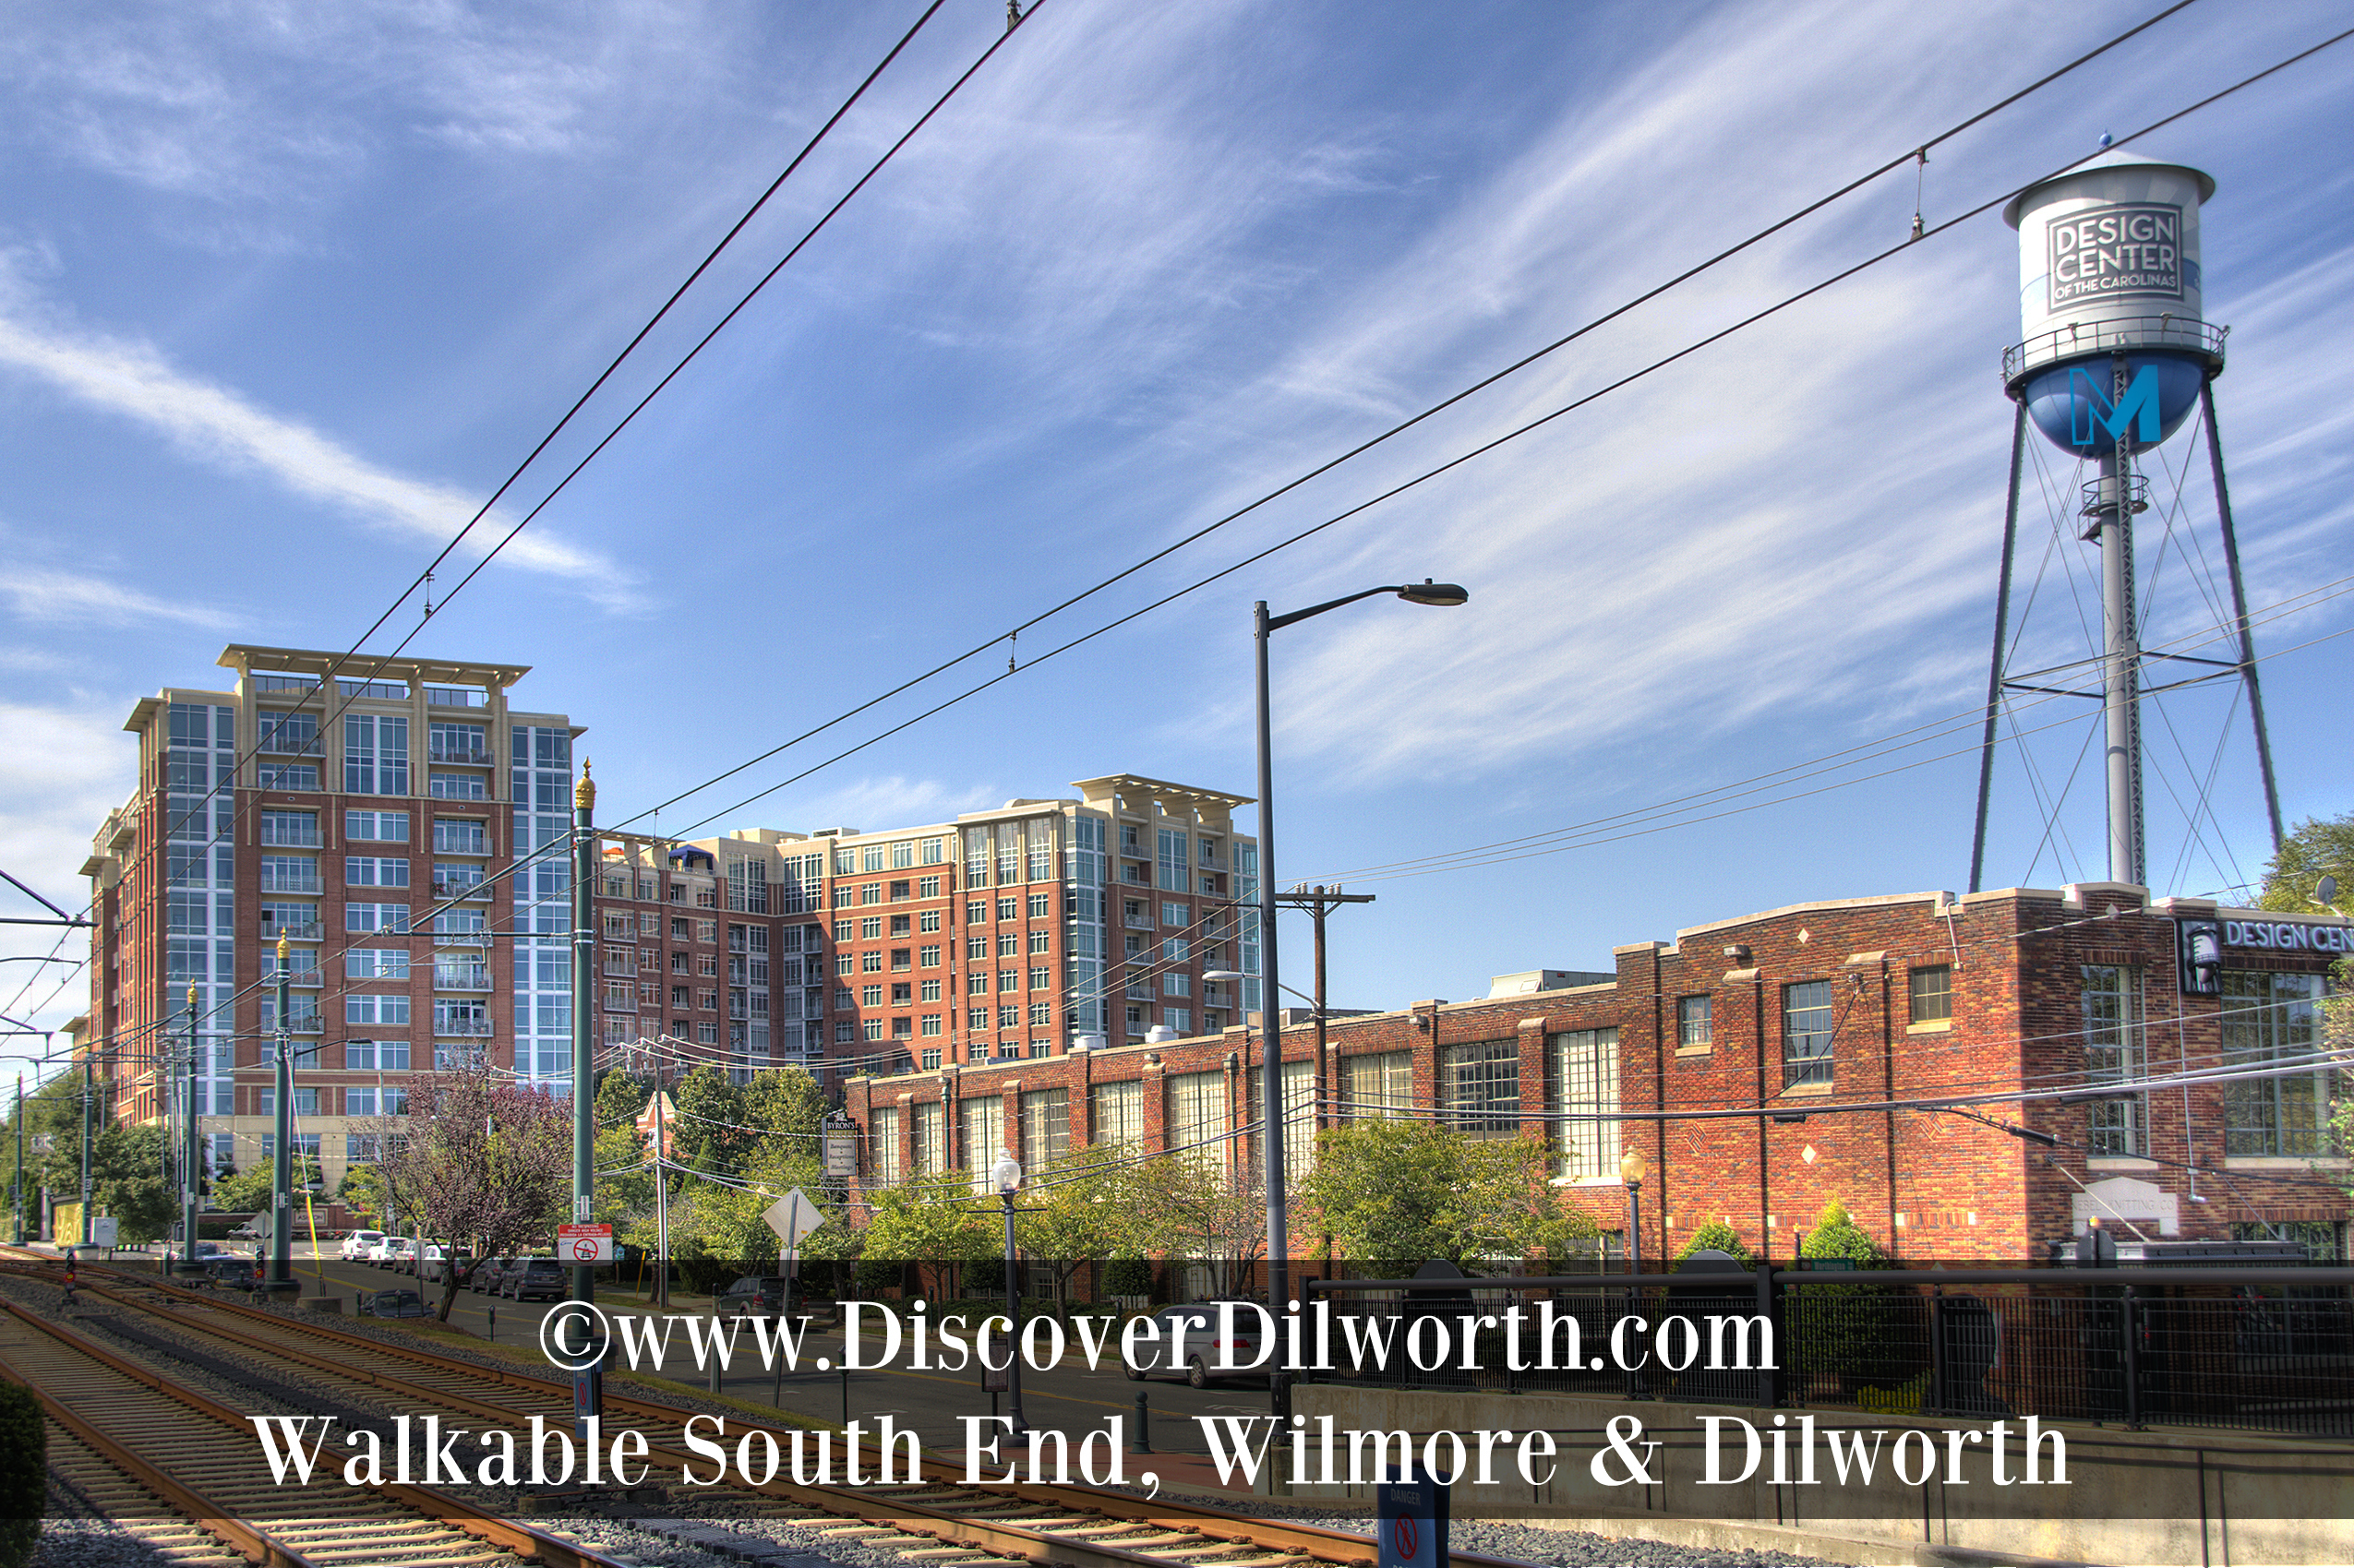 Walkable Dilworth Wilmore and South End